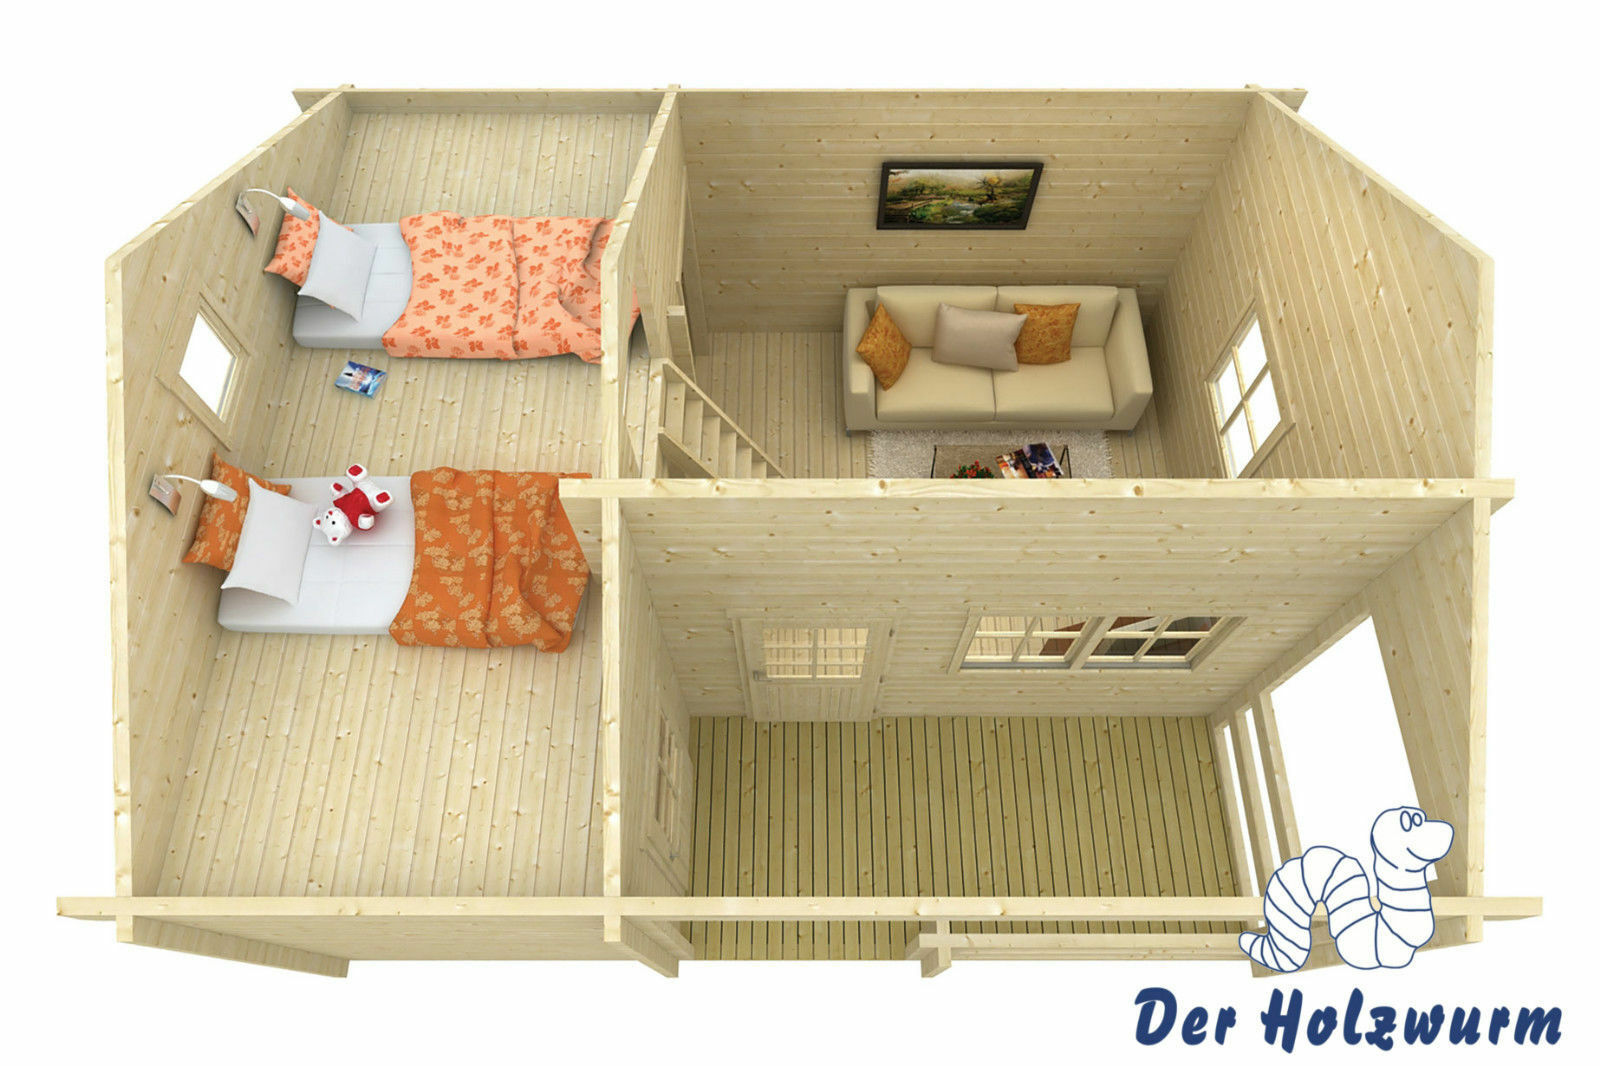 70 mm gartenhaus 600x510cm blockhaus ferienhaus holzhaus holz h tte b ro eur. Black Bedroom Furniture Sets. Home Design Ideas